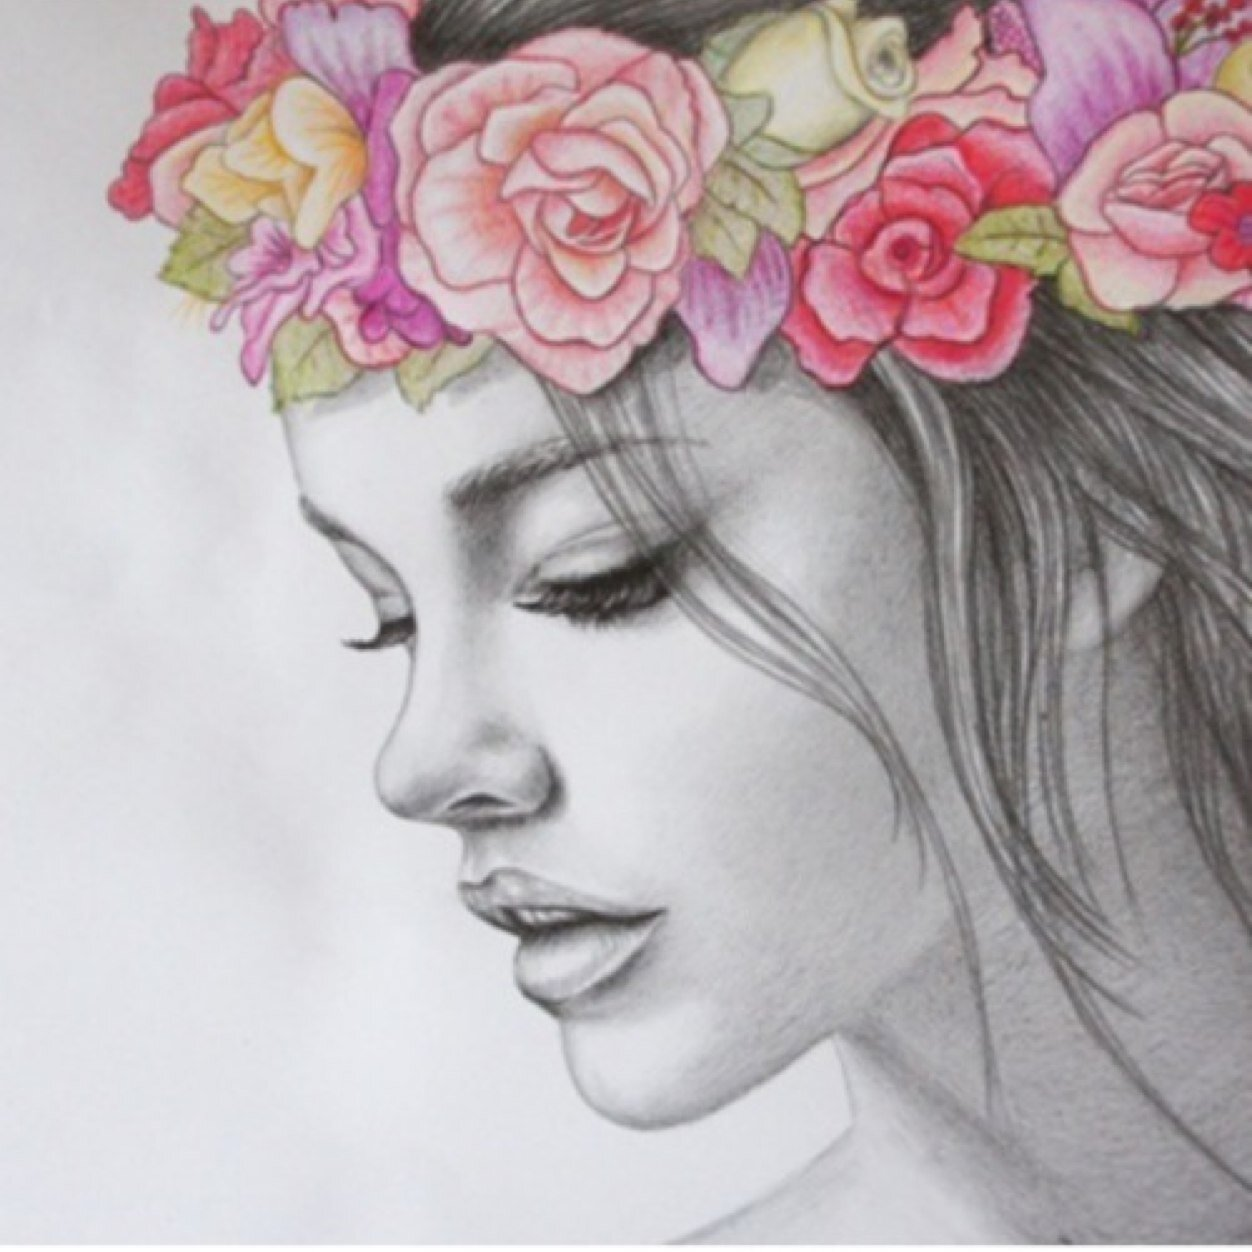 Nami Su May Flowers By Queenbean3 Find This Pin And More On Howtodraw  Tutorials Rose Tinted